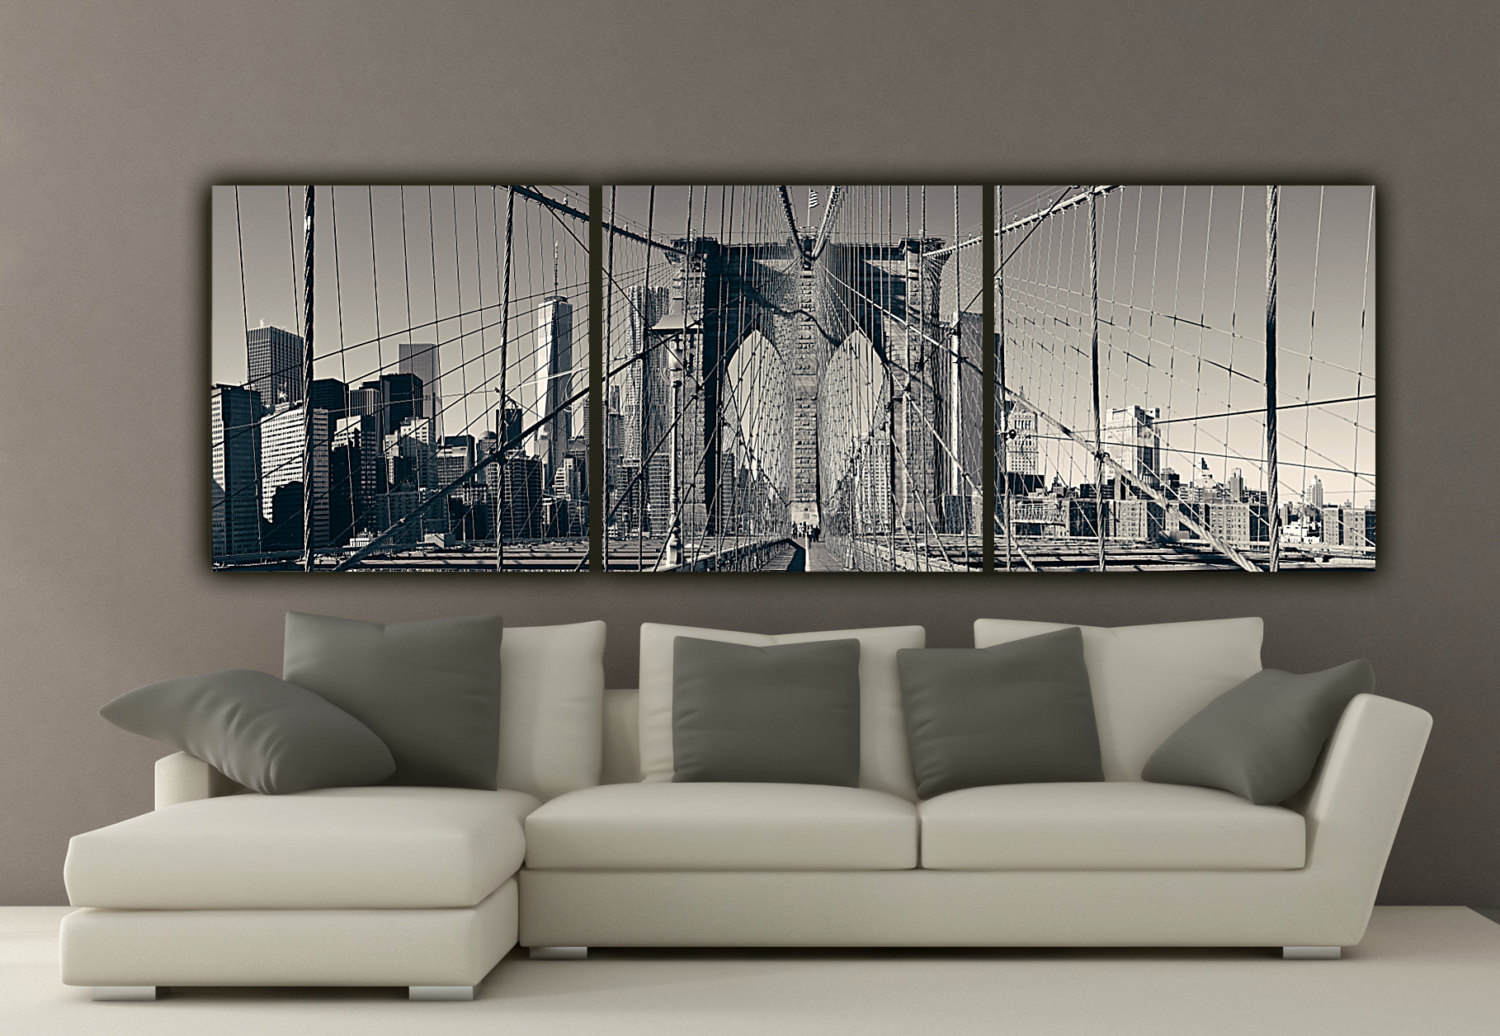 modern interior with a moody trio of photographs on canvases